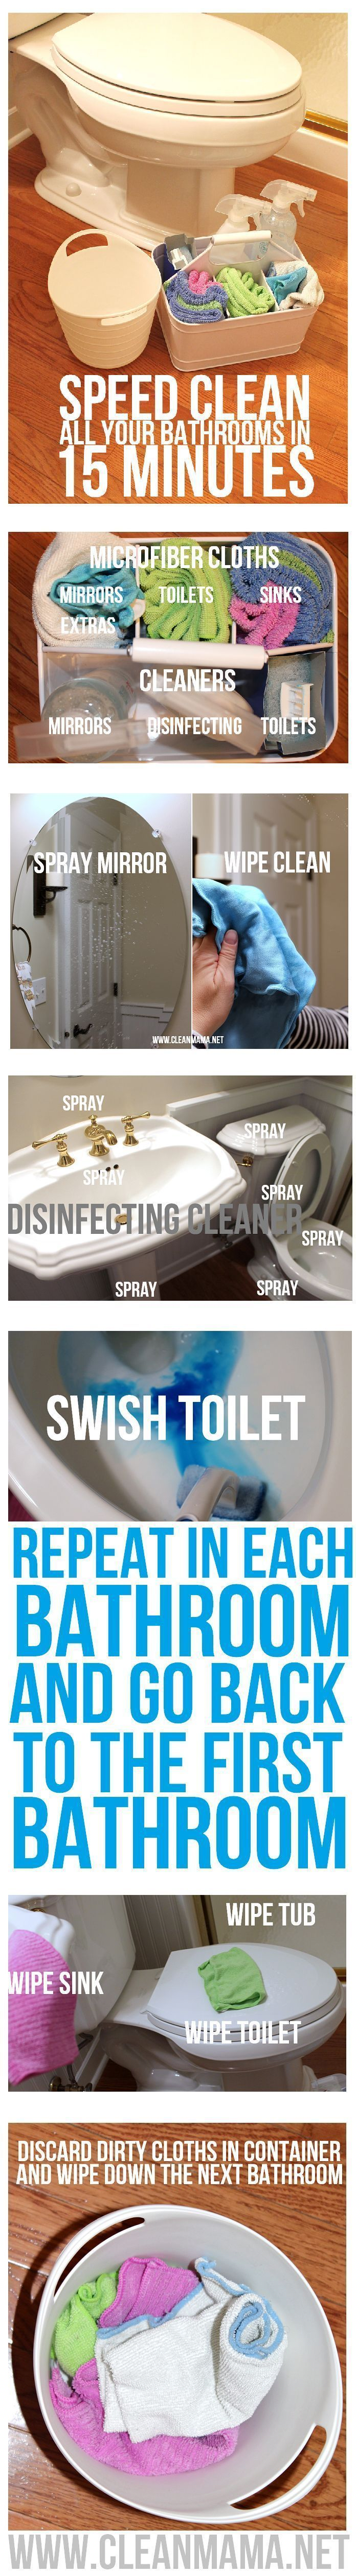 10 best Fight the Flu Disinfecting Tips images on Pinterest ...